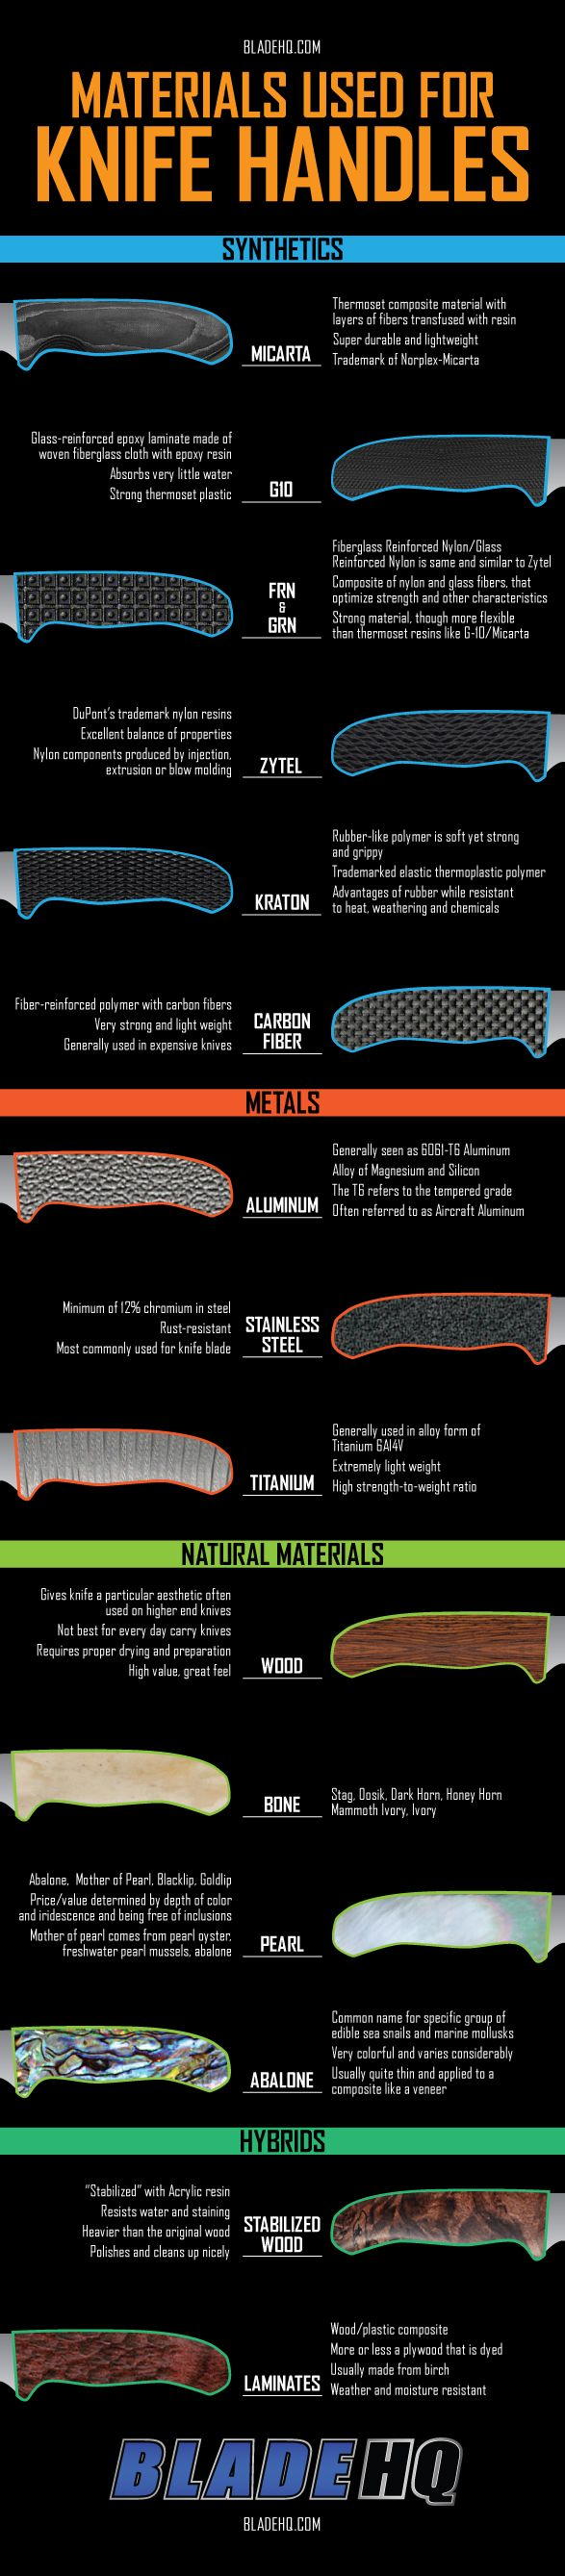 Materials used for Knife Handles - An old, but still awesome, infographic of Blade HQ's